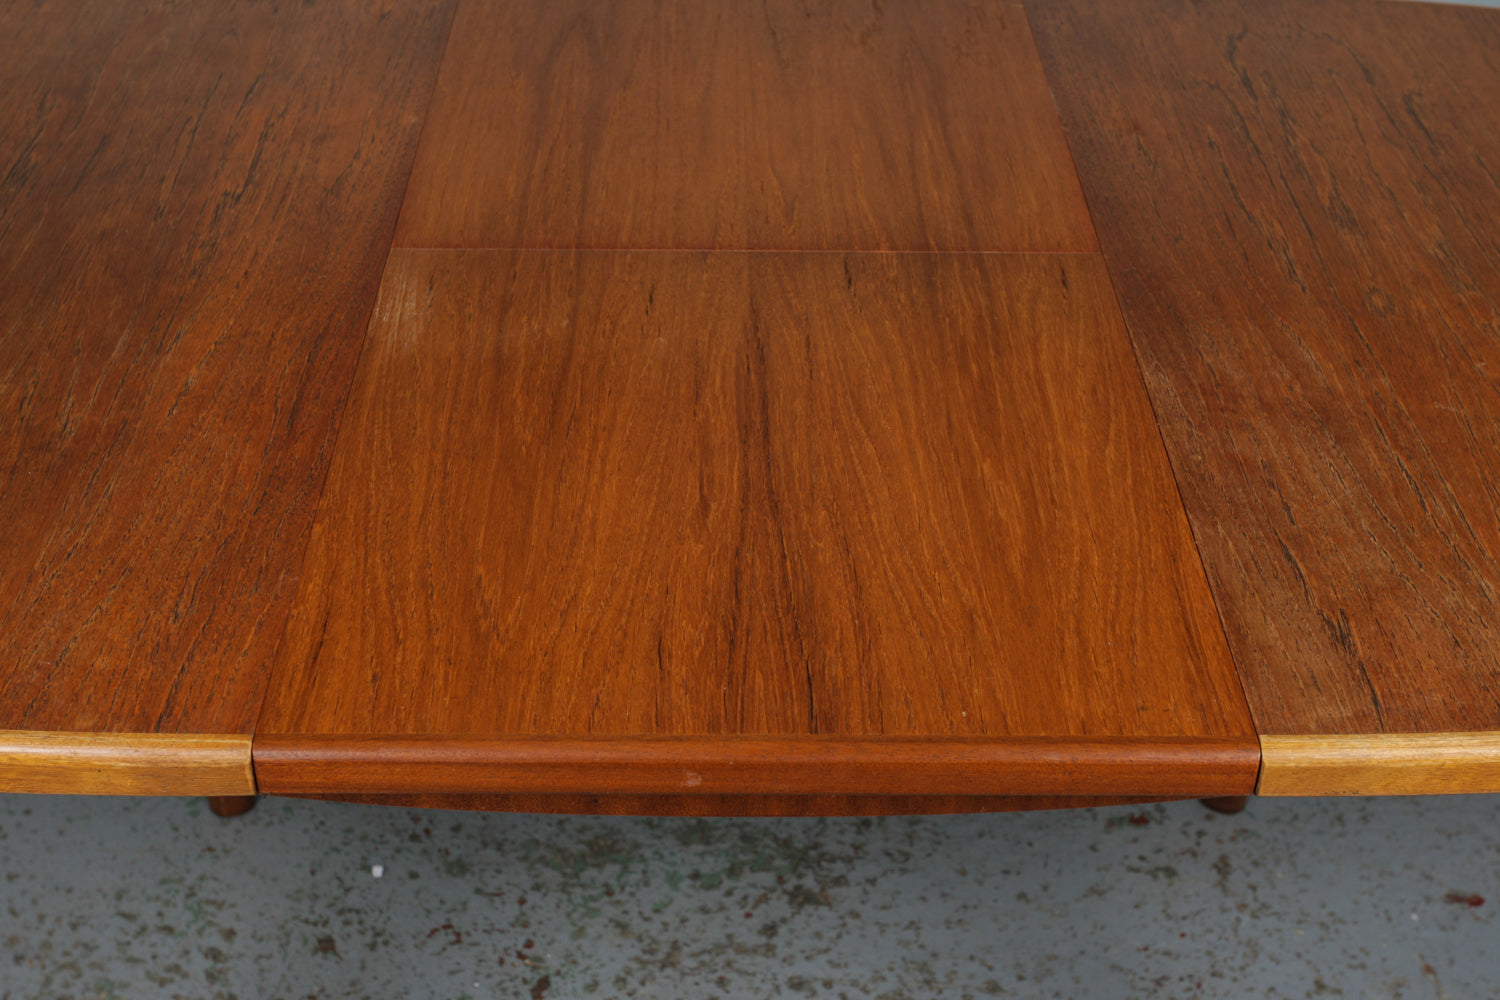 McIntosh dining room table